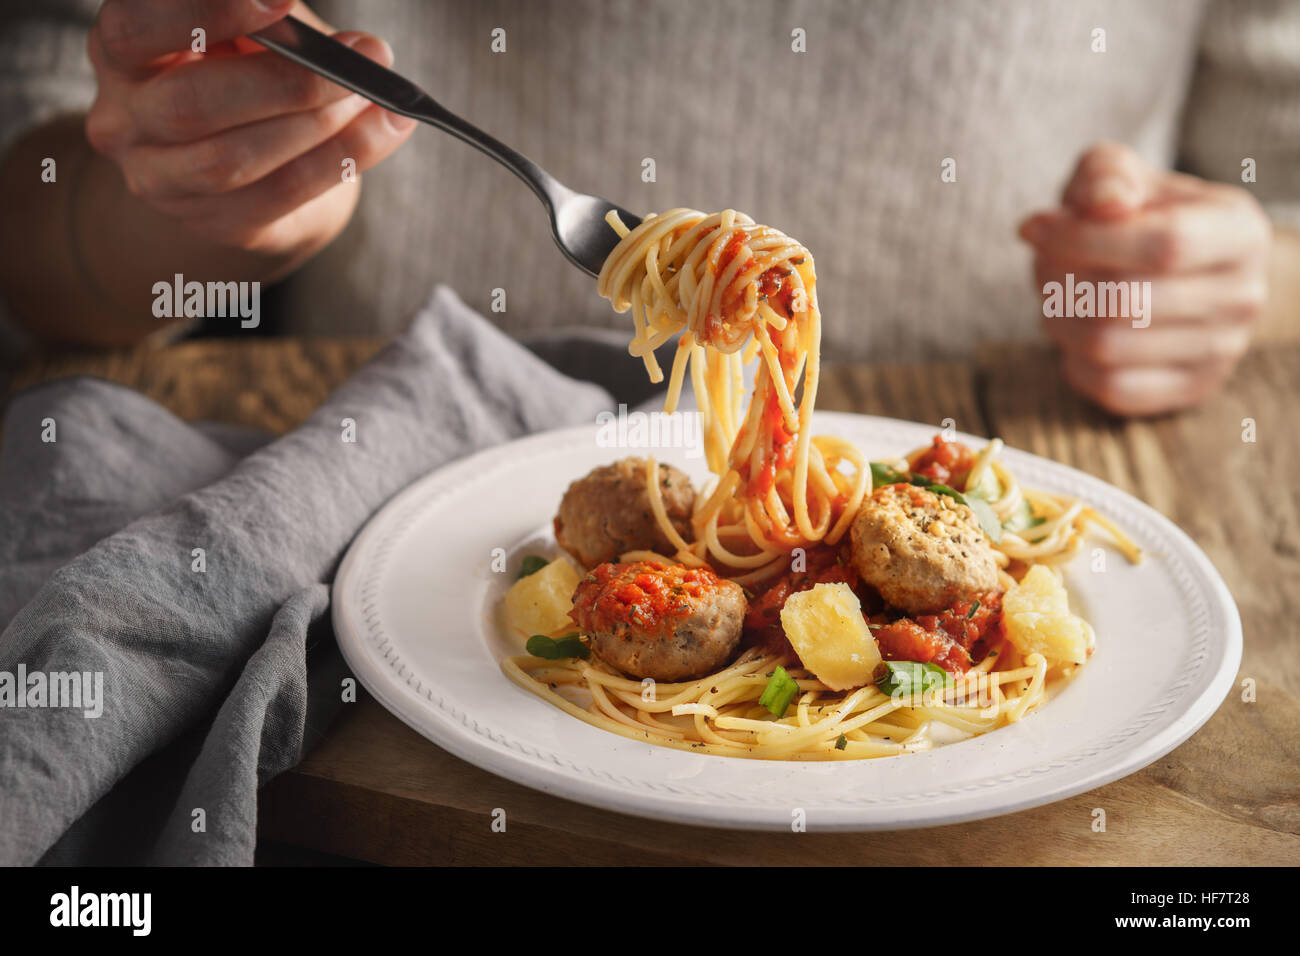 Woman eating spaghetti with meatballs and cheese horizontal - Stock Image